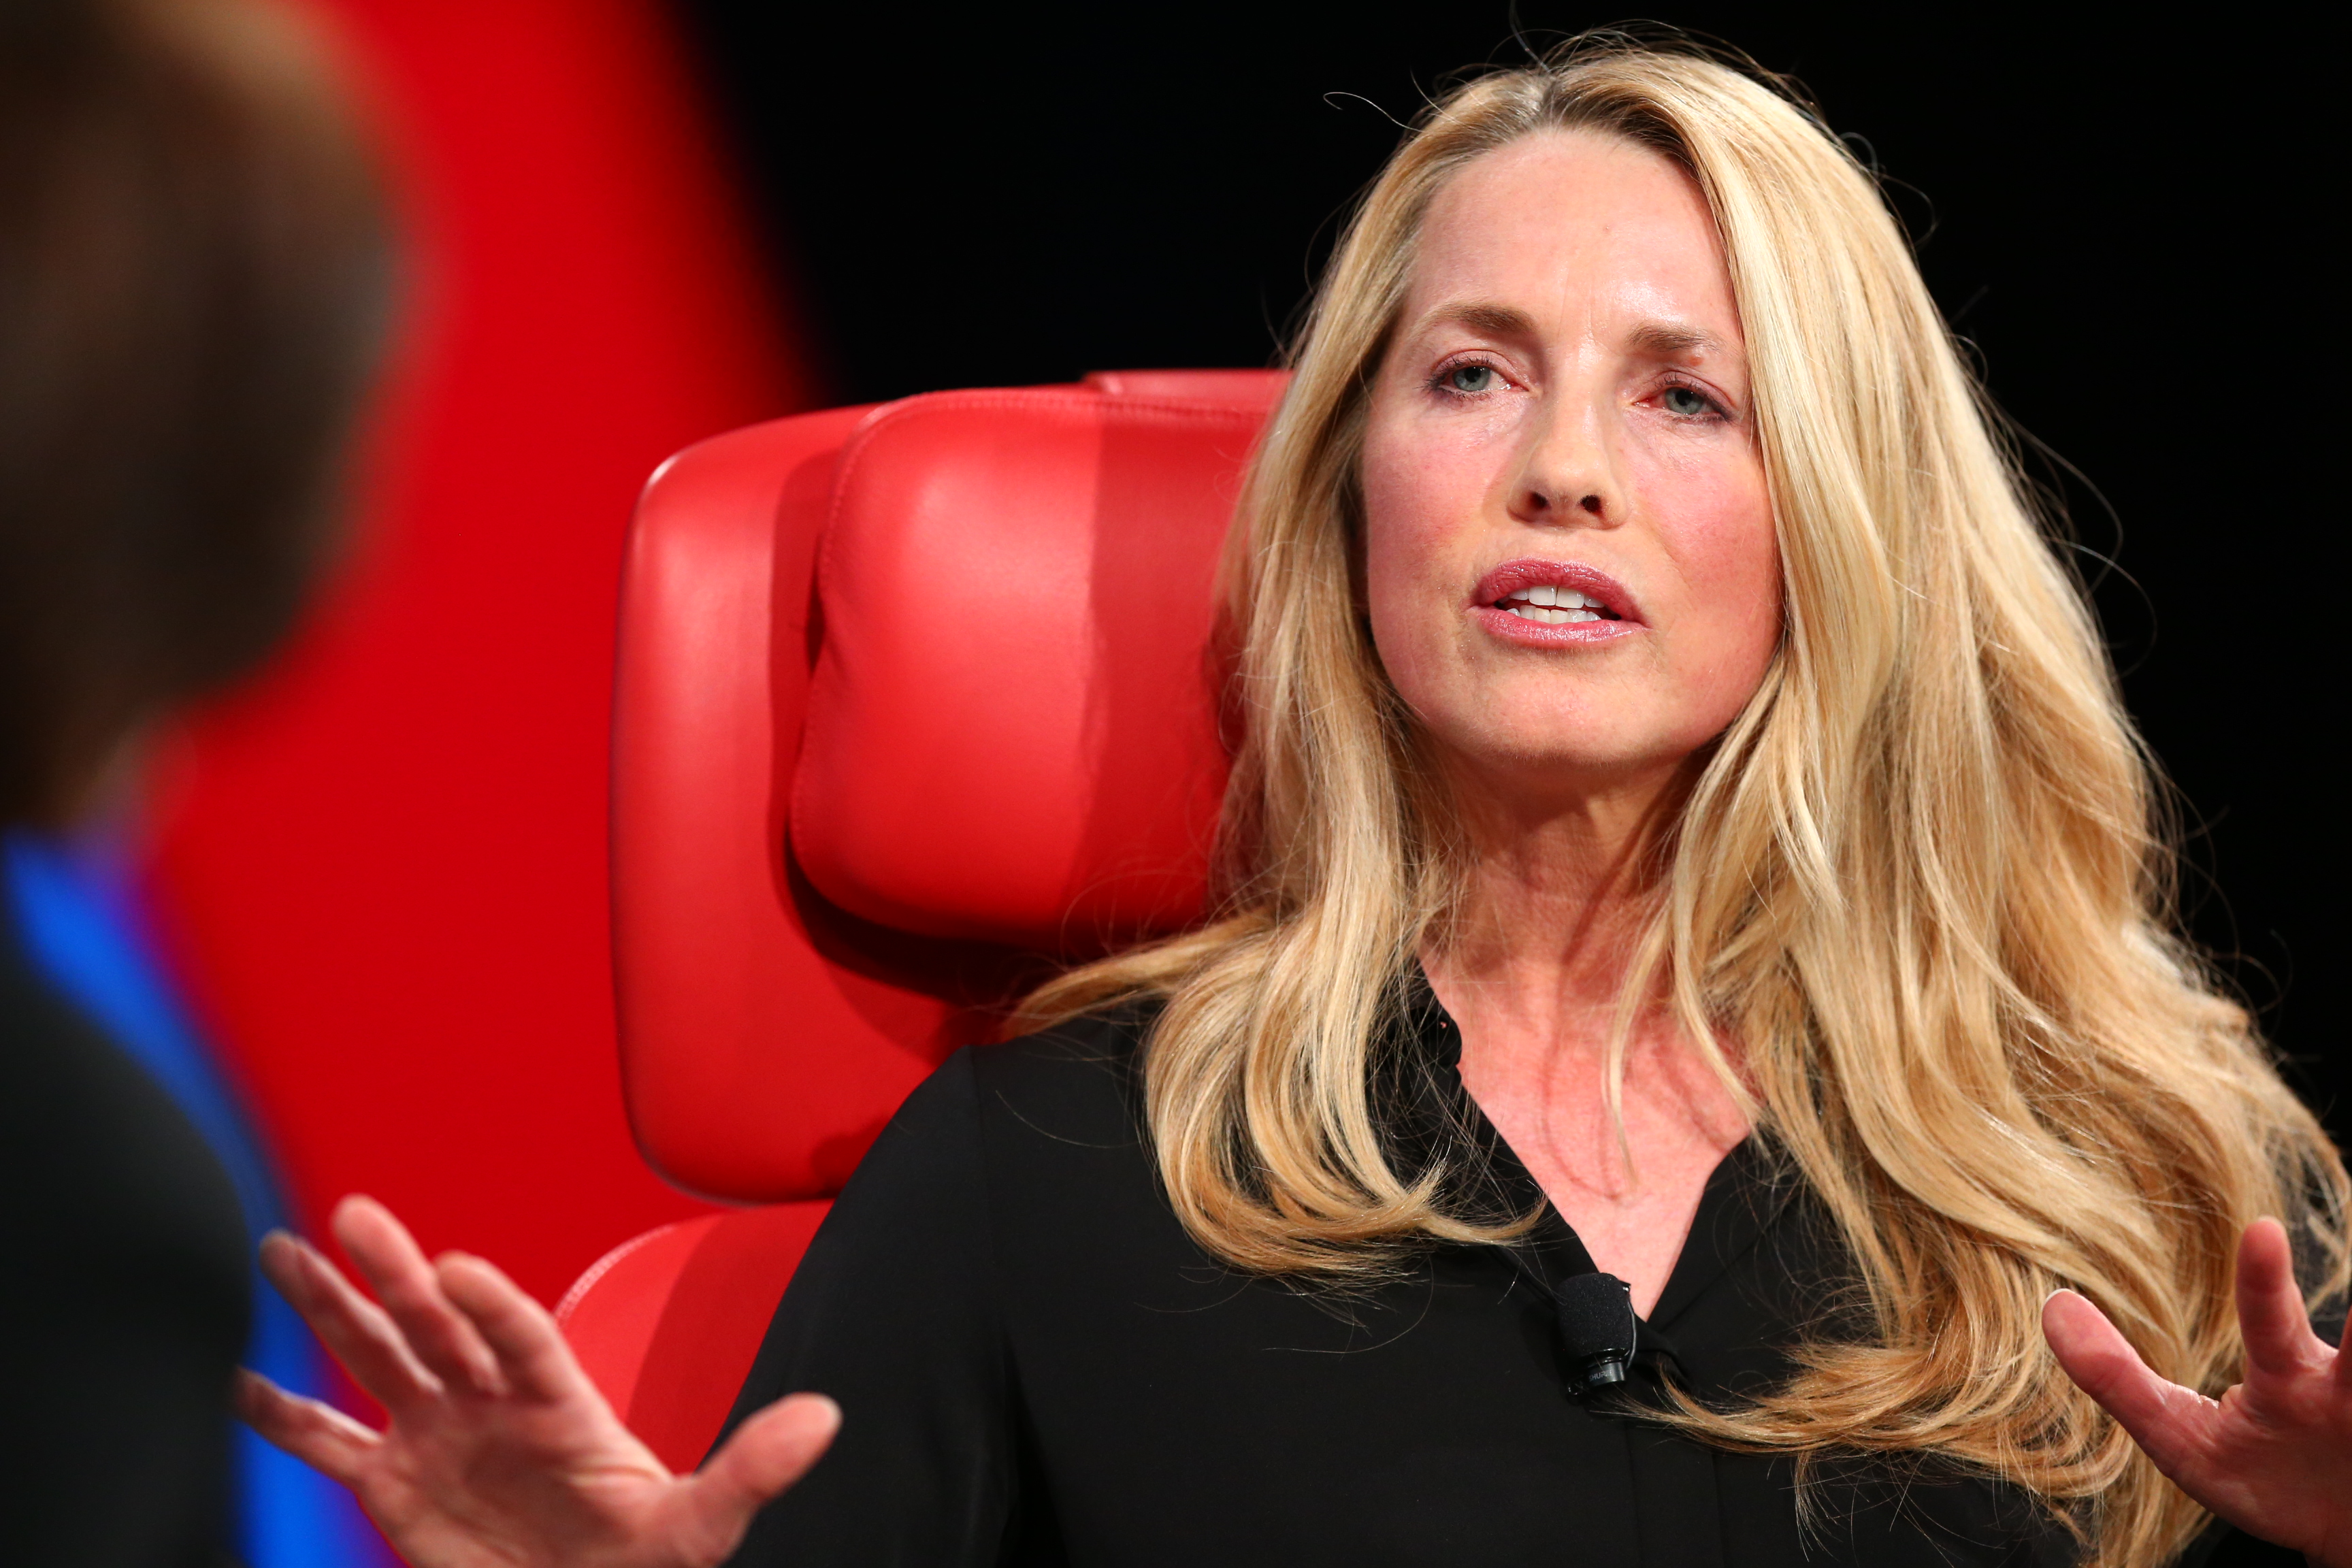 Laurene Powell Jobs onstage at Code 2017.